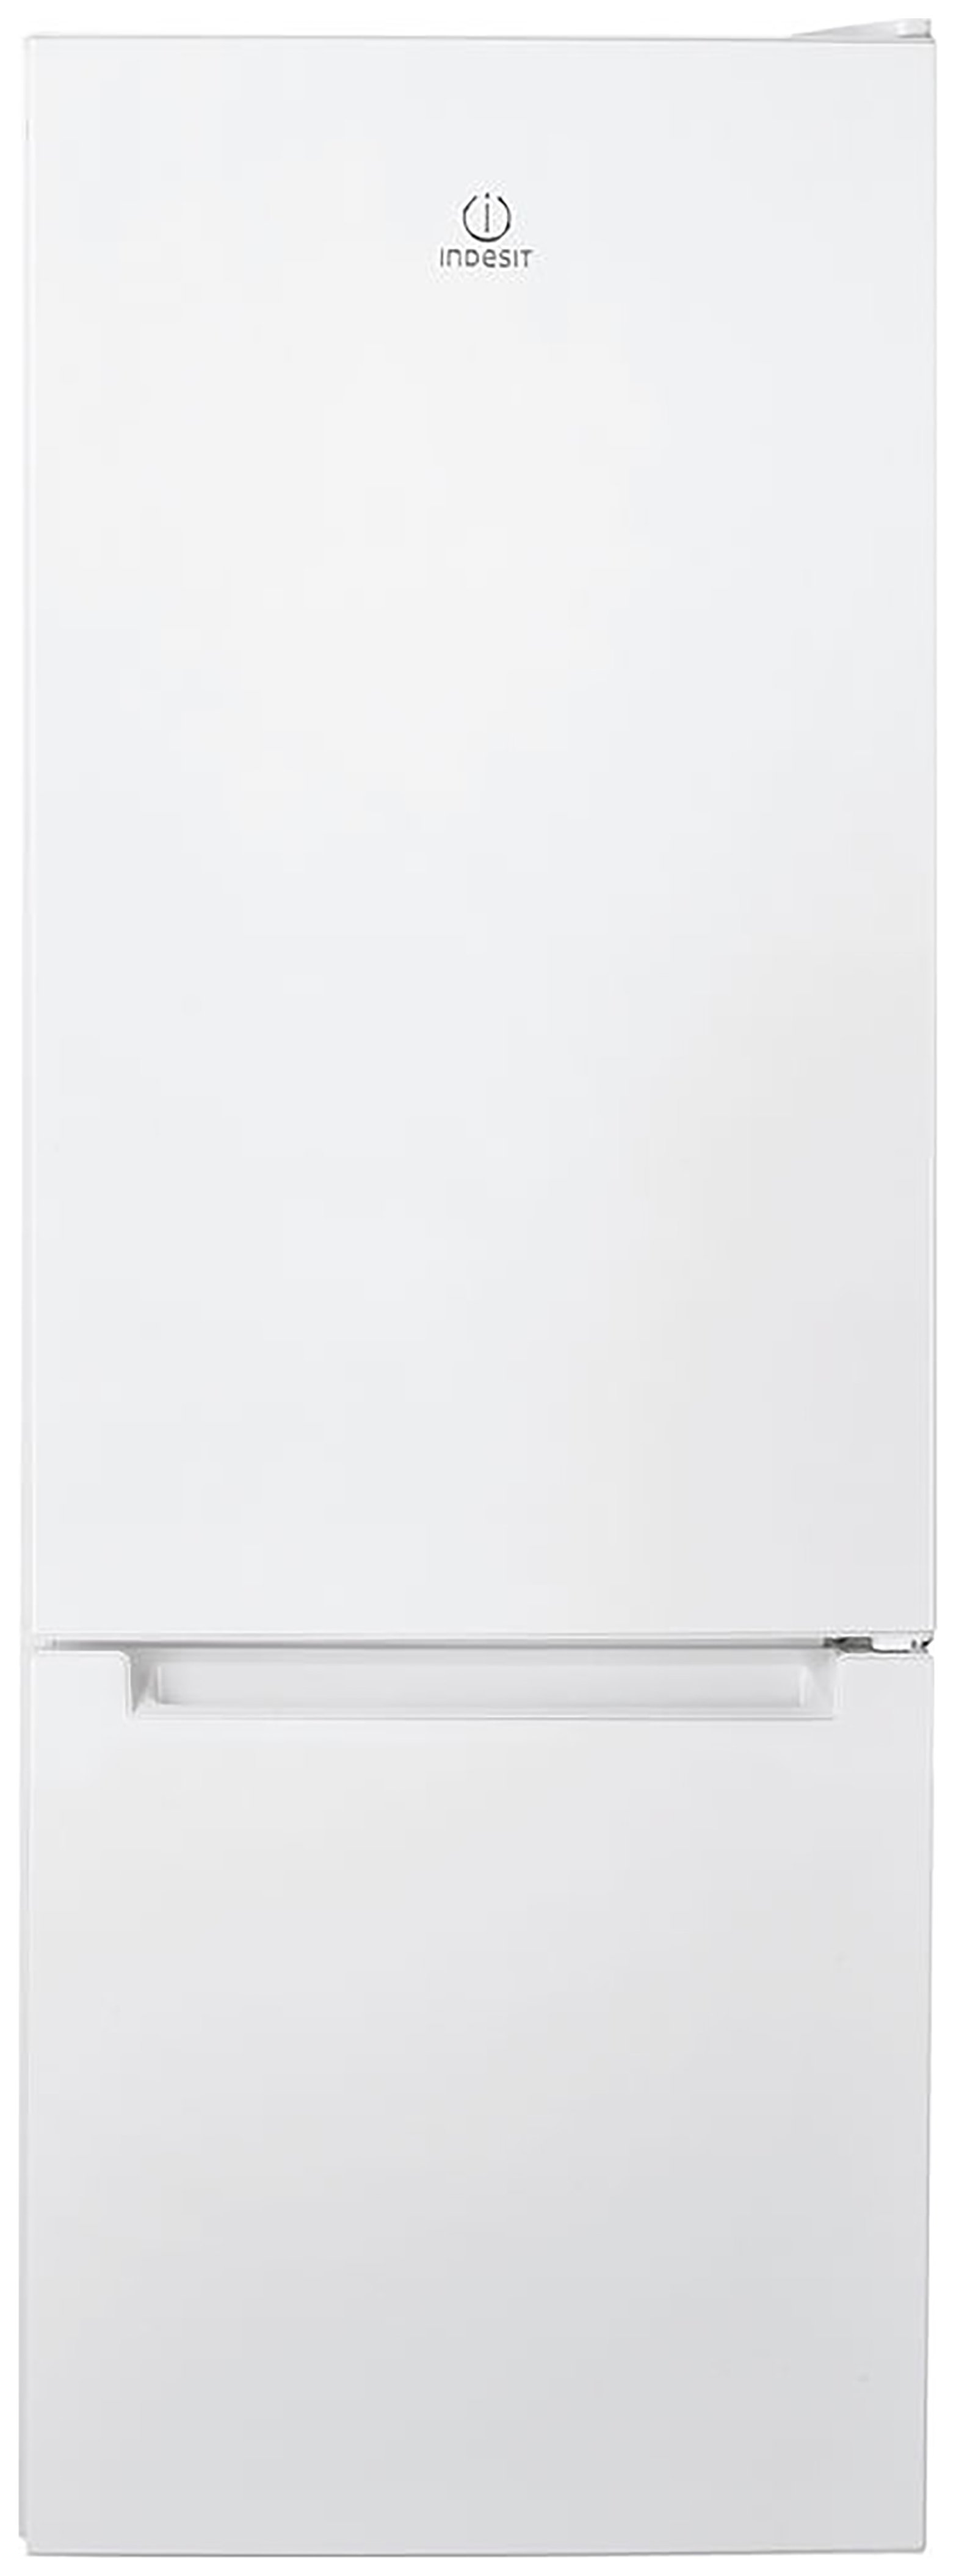 Indesit LR6S1W Fridge Freezer - White Best Price, Cheapest Prices